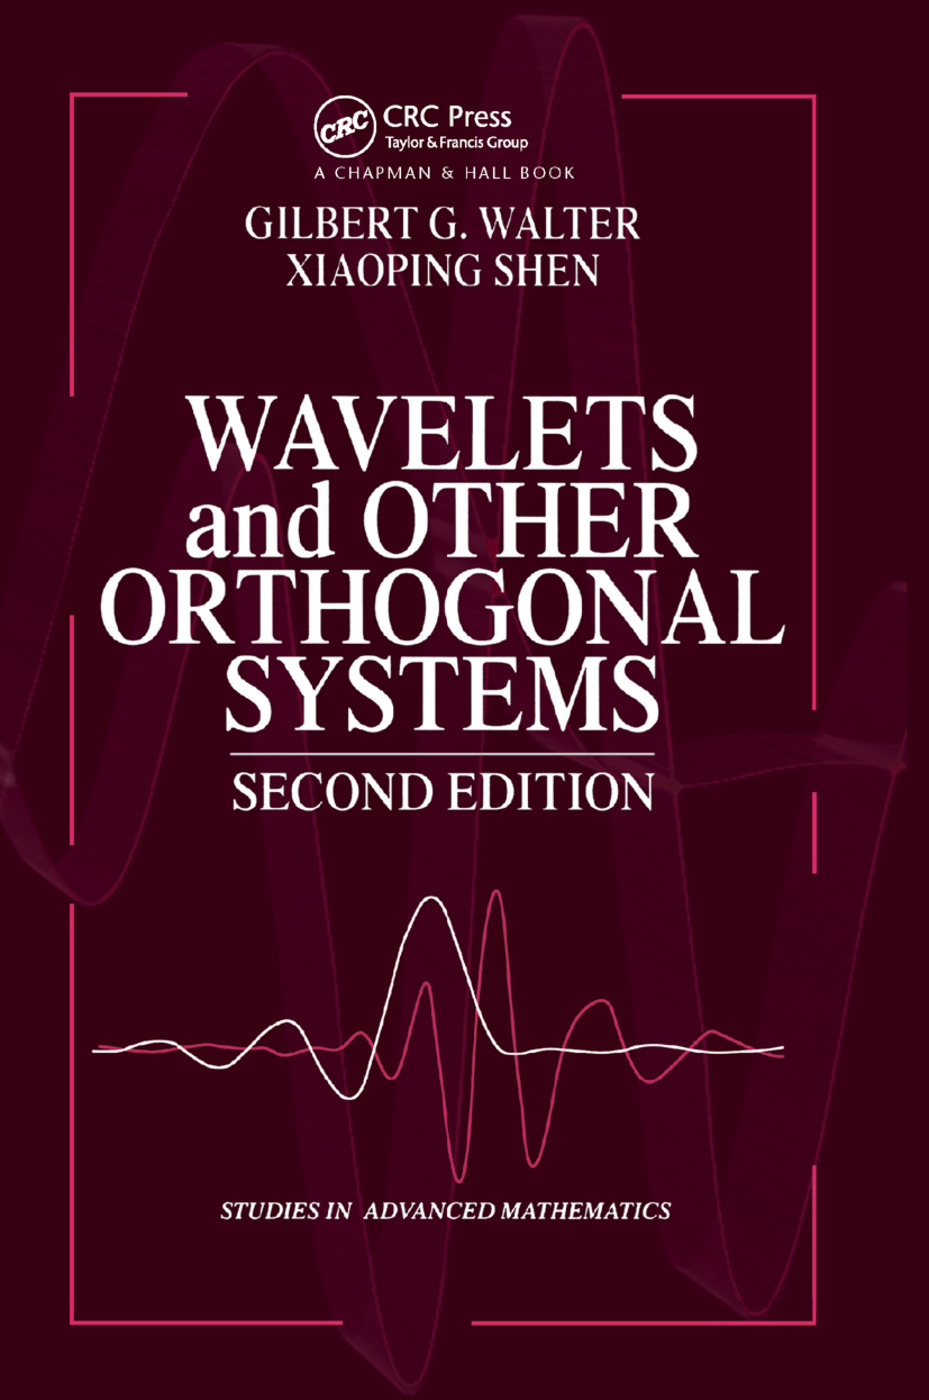 Wavelets and Other Orthogonal Systems book cover